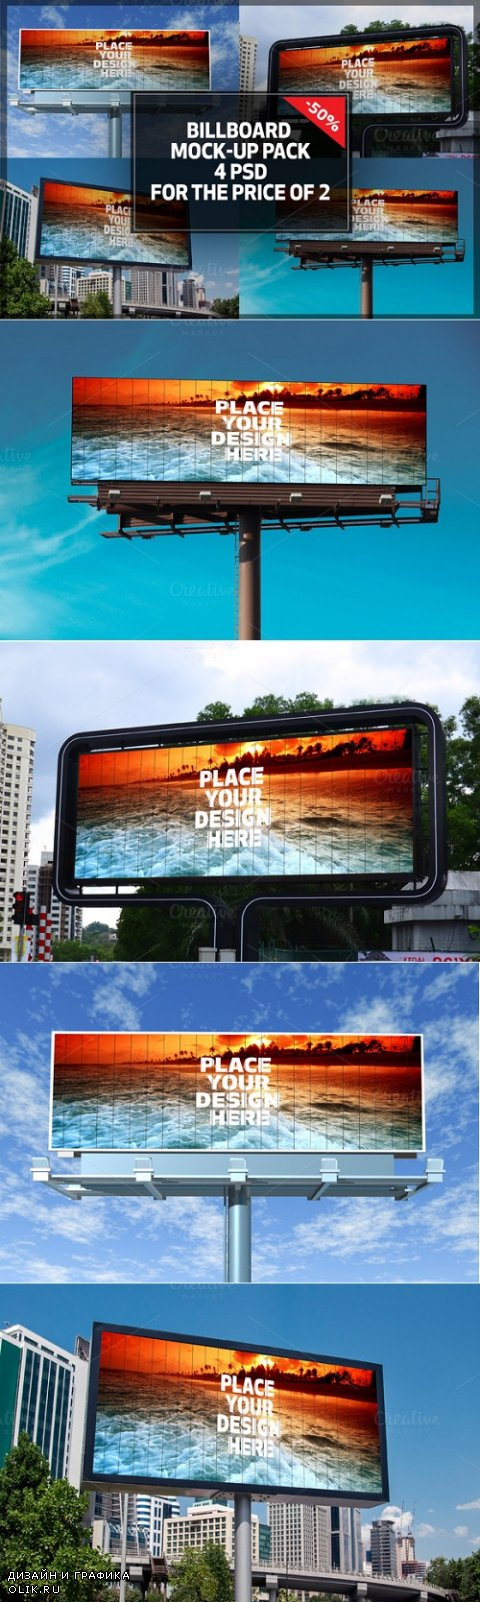 4 Billboard Mock-up Pack N.1 - 863366